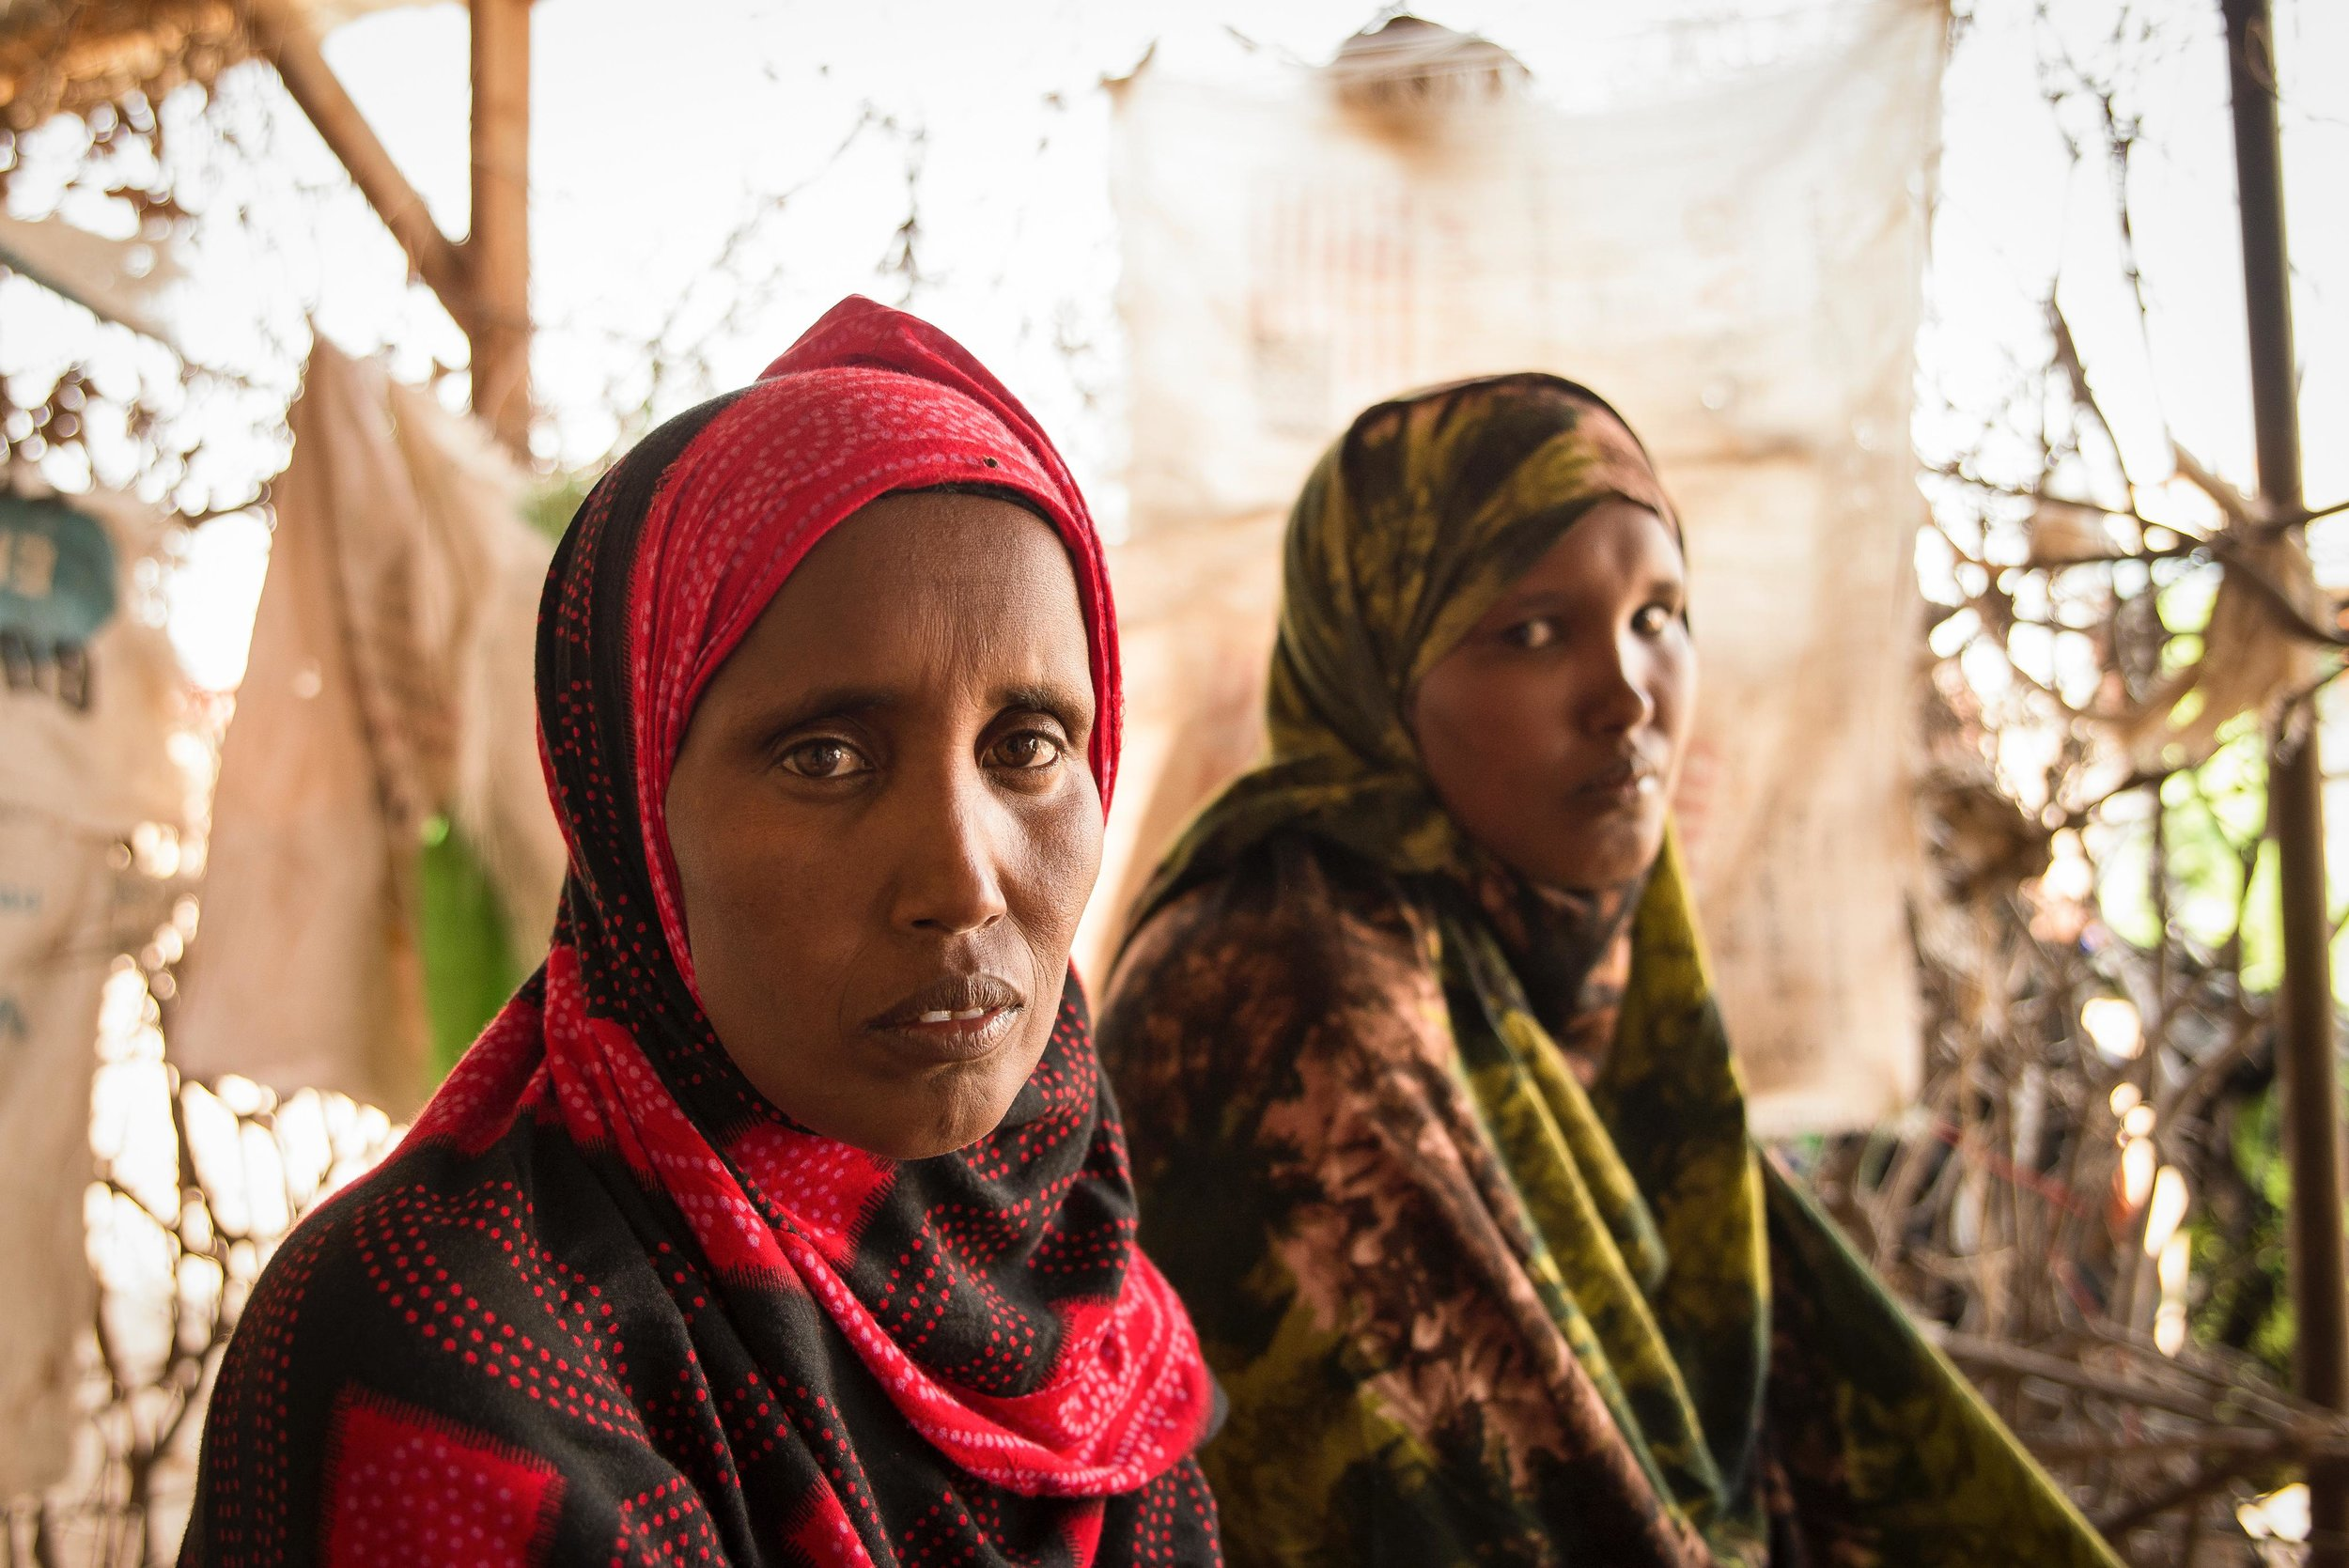 Sisters Kadija and Aminda Hussein rest at a shop in Hadado town in Northern Kenya.  The two sisters said they are struggling to feed their children due to the ongoing drought in the region.